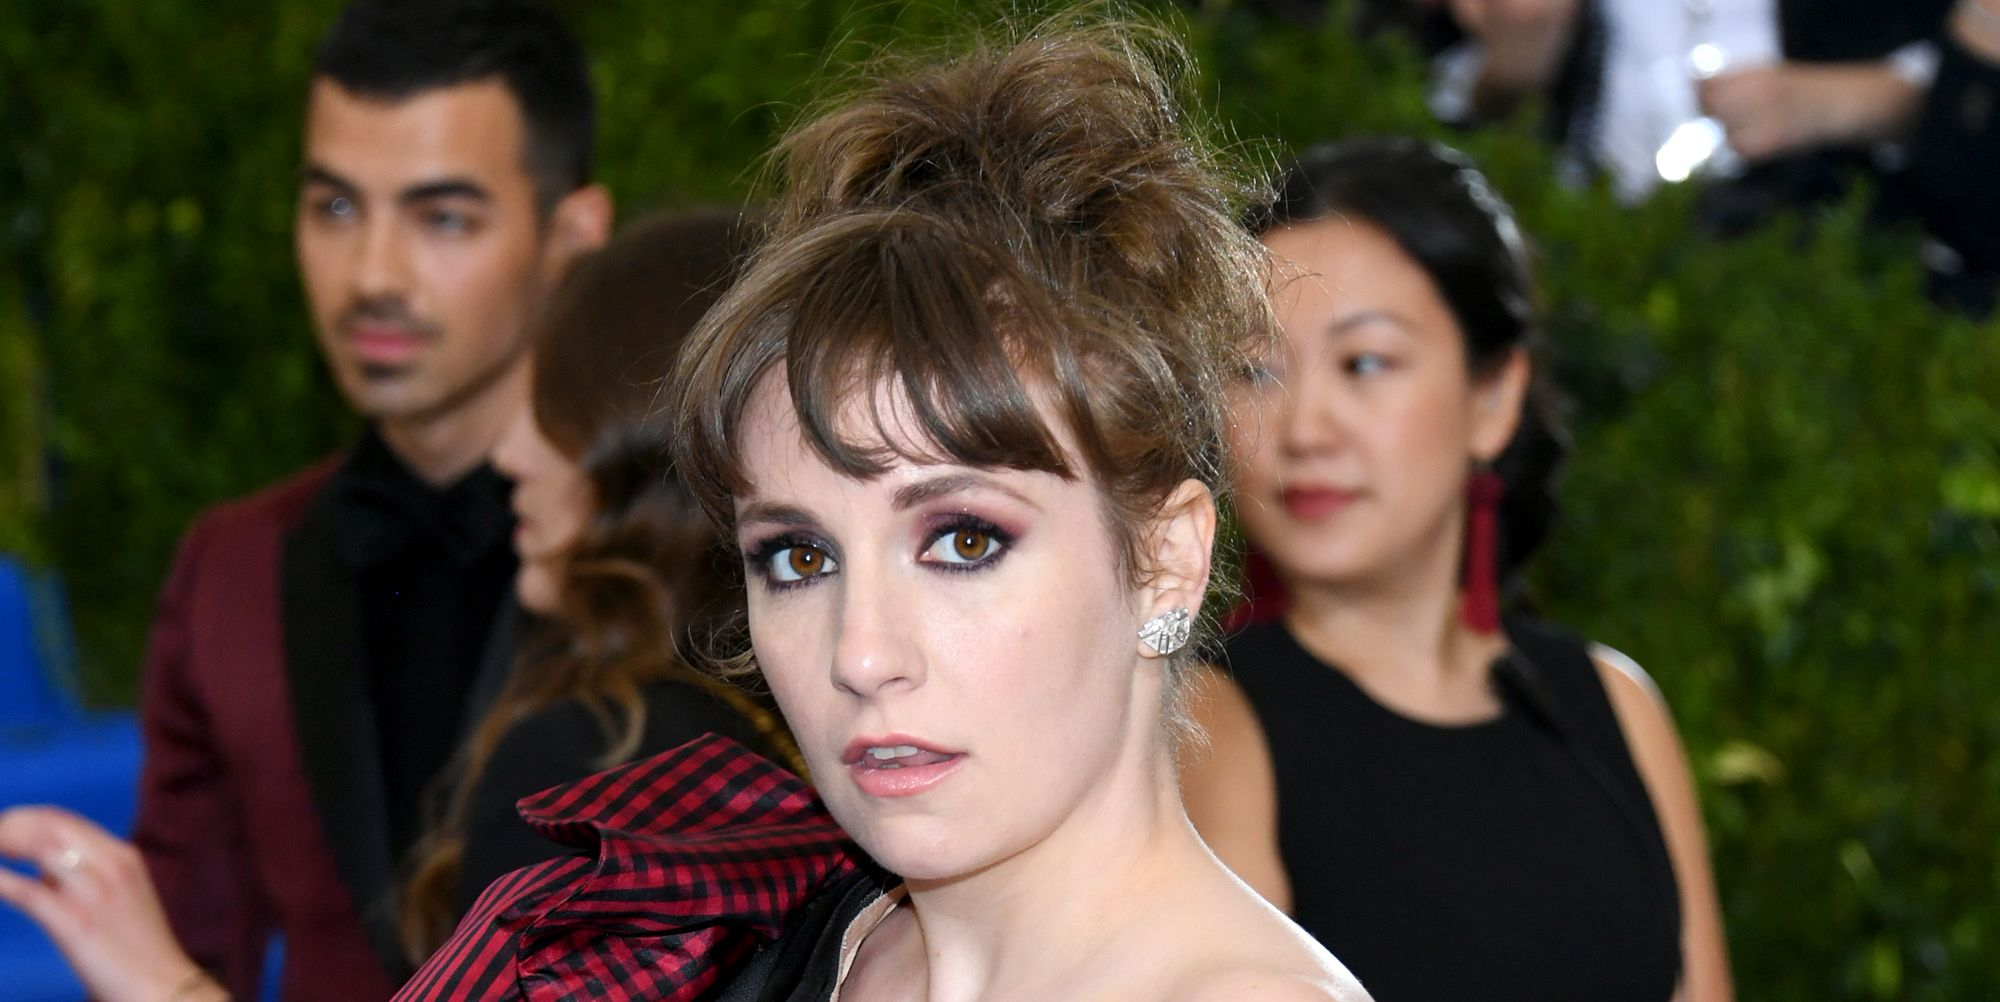 Lena Dunham at the Met Gala 2017